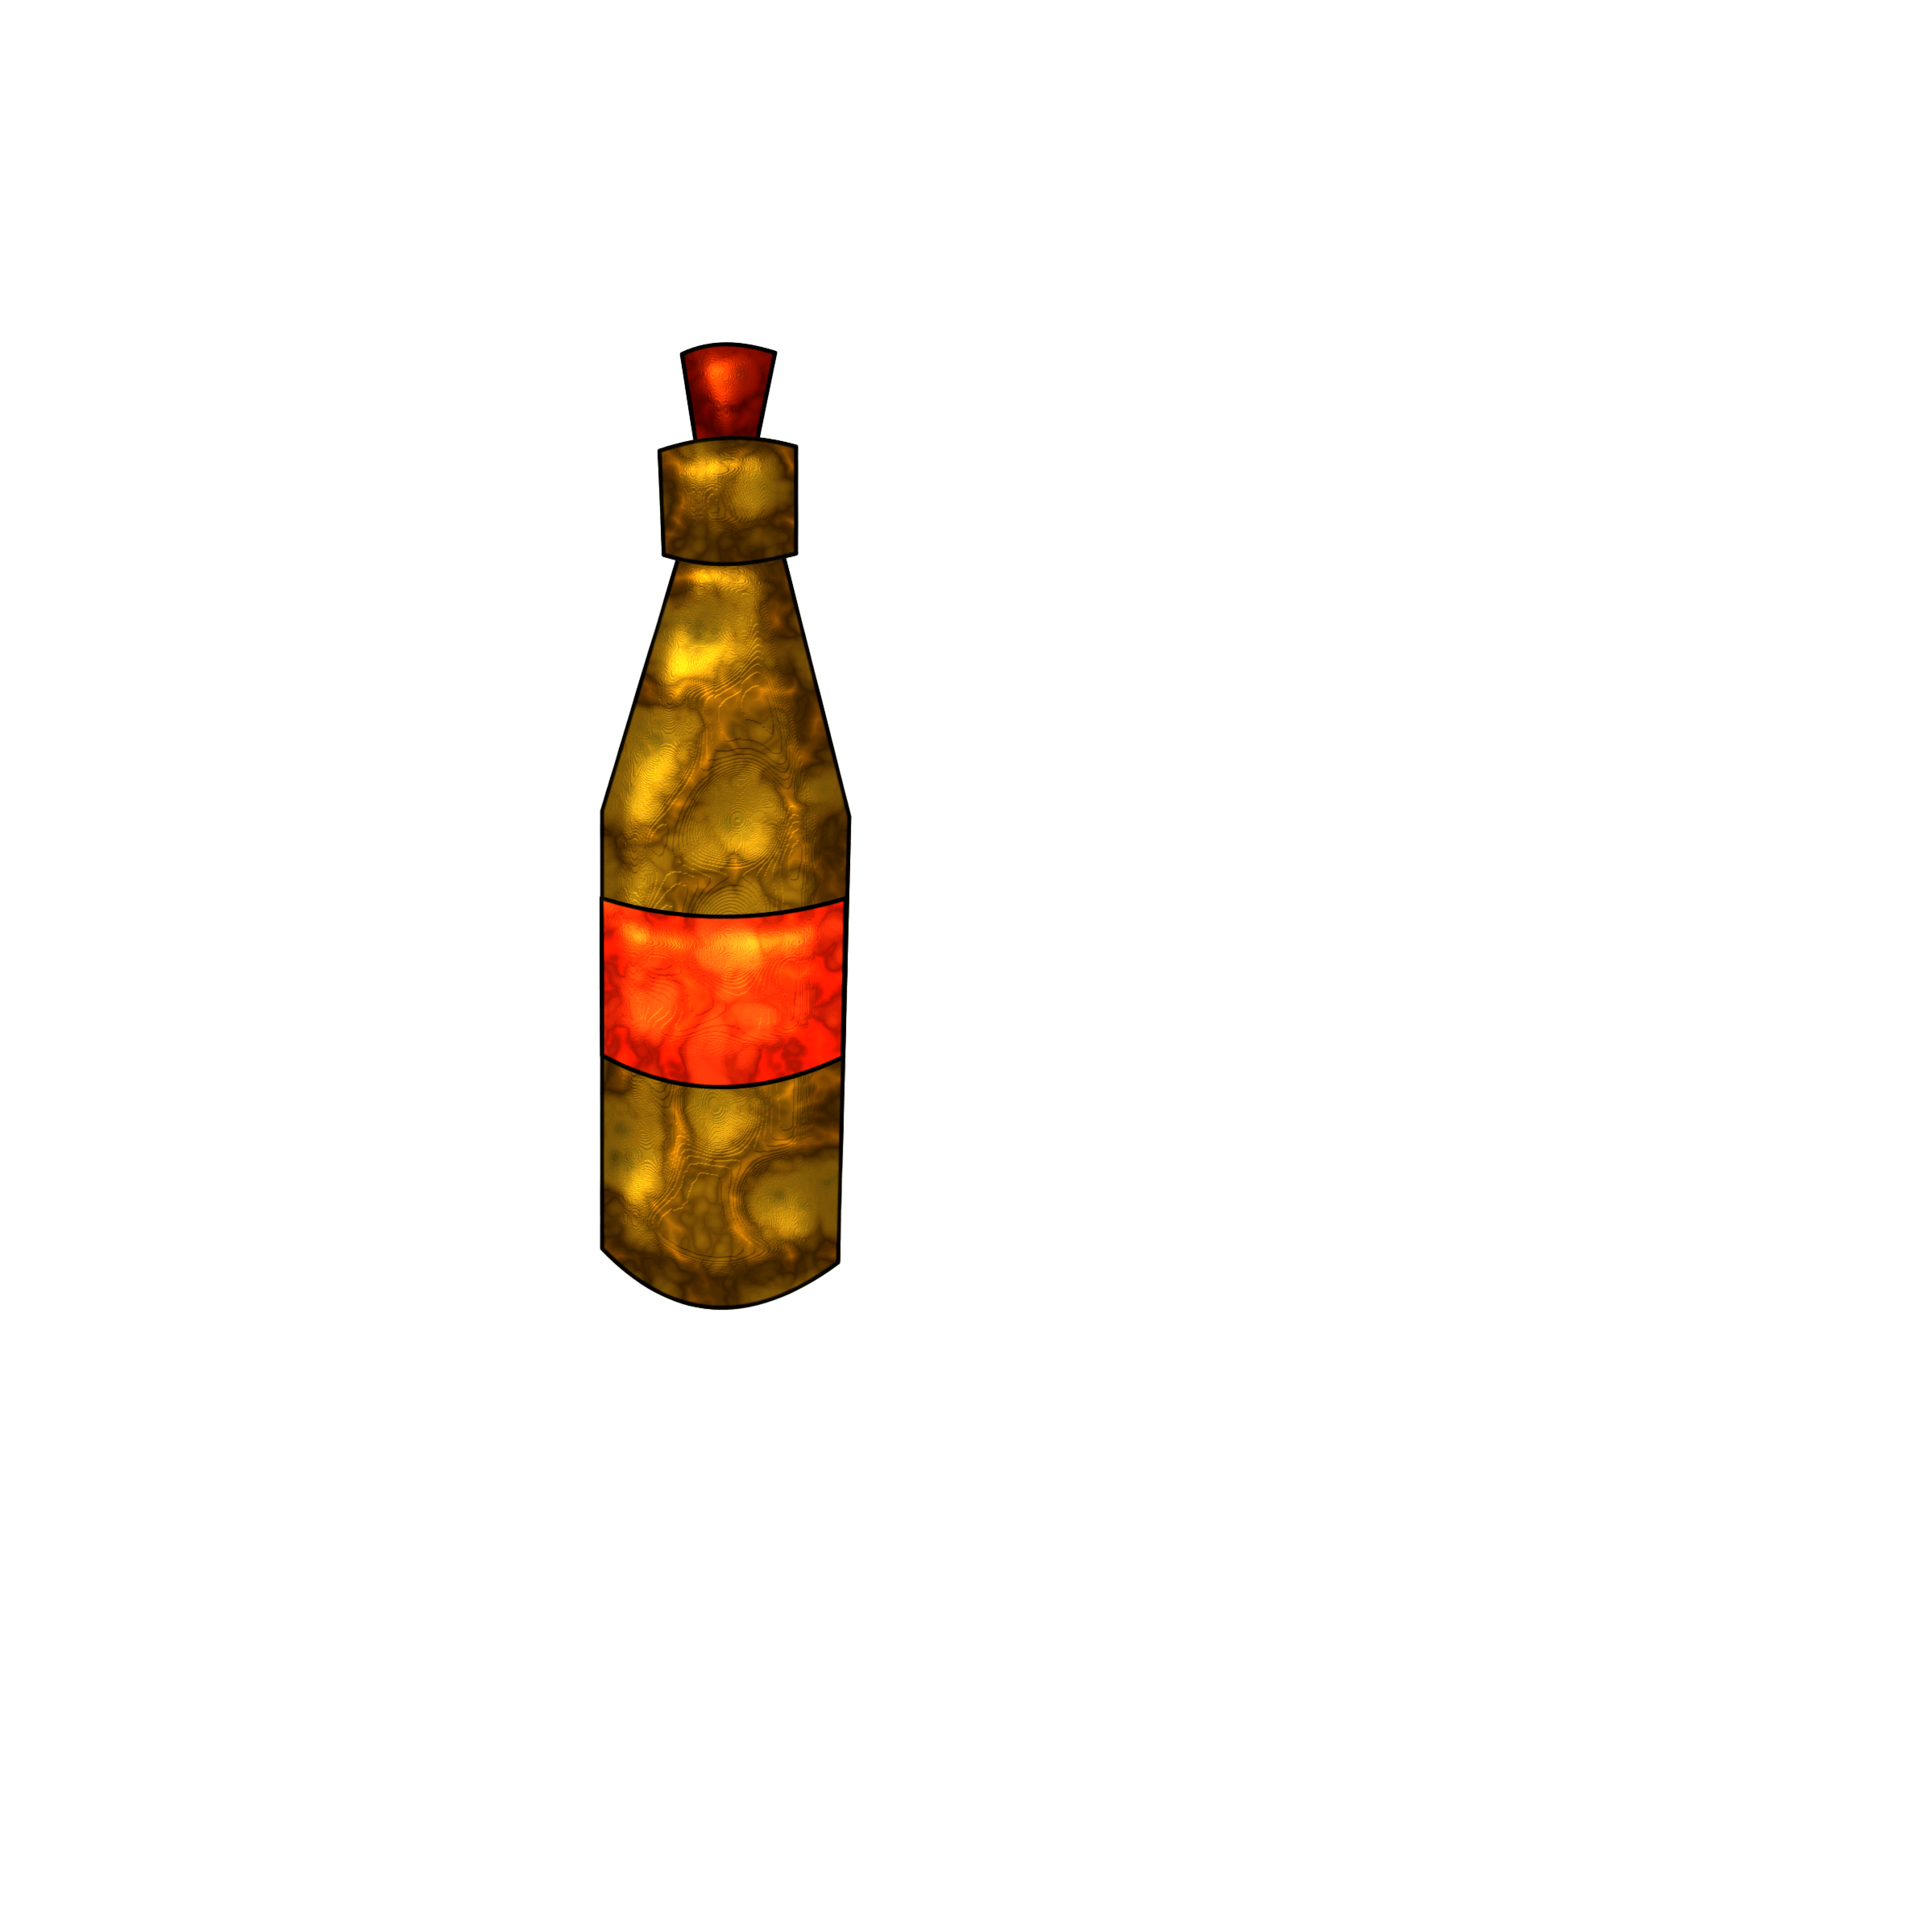 Bottle of ale by Flying Dutchman